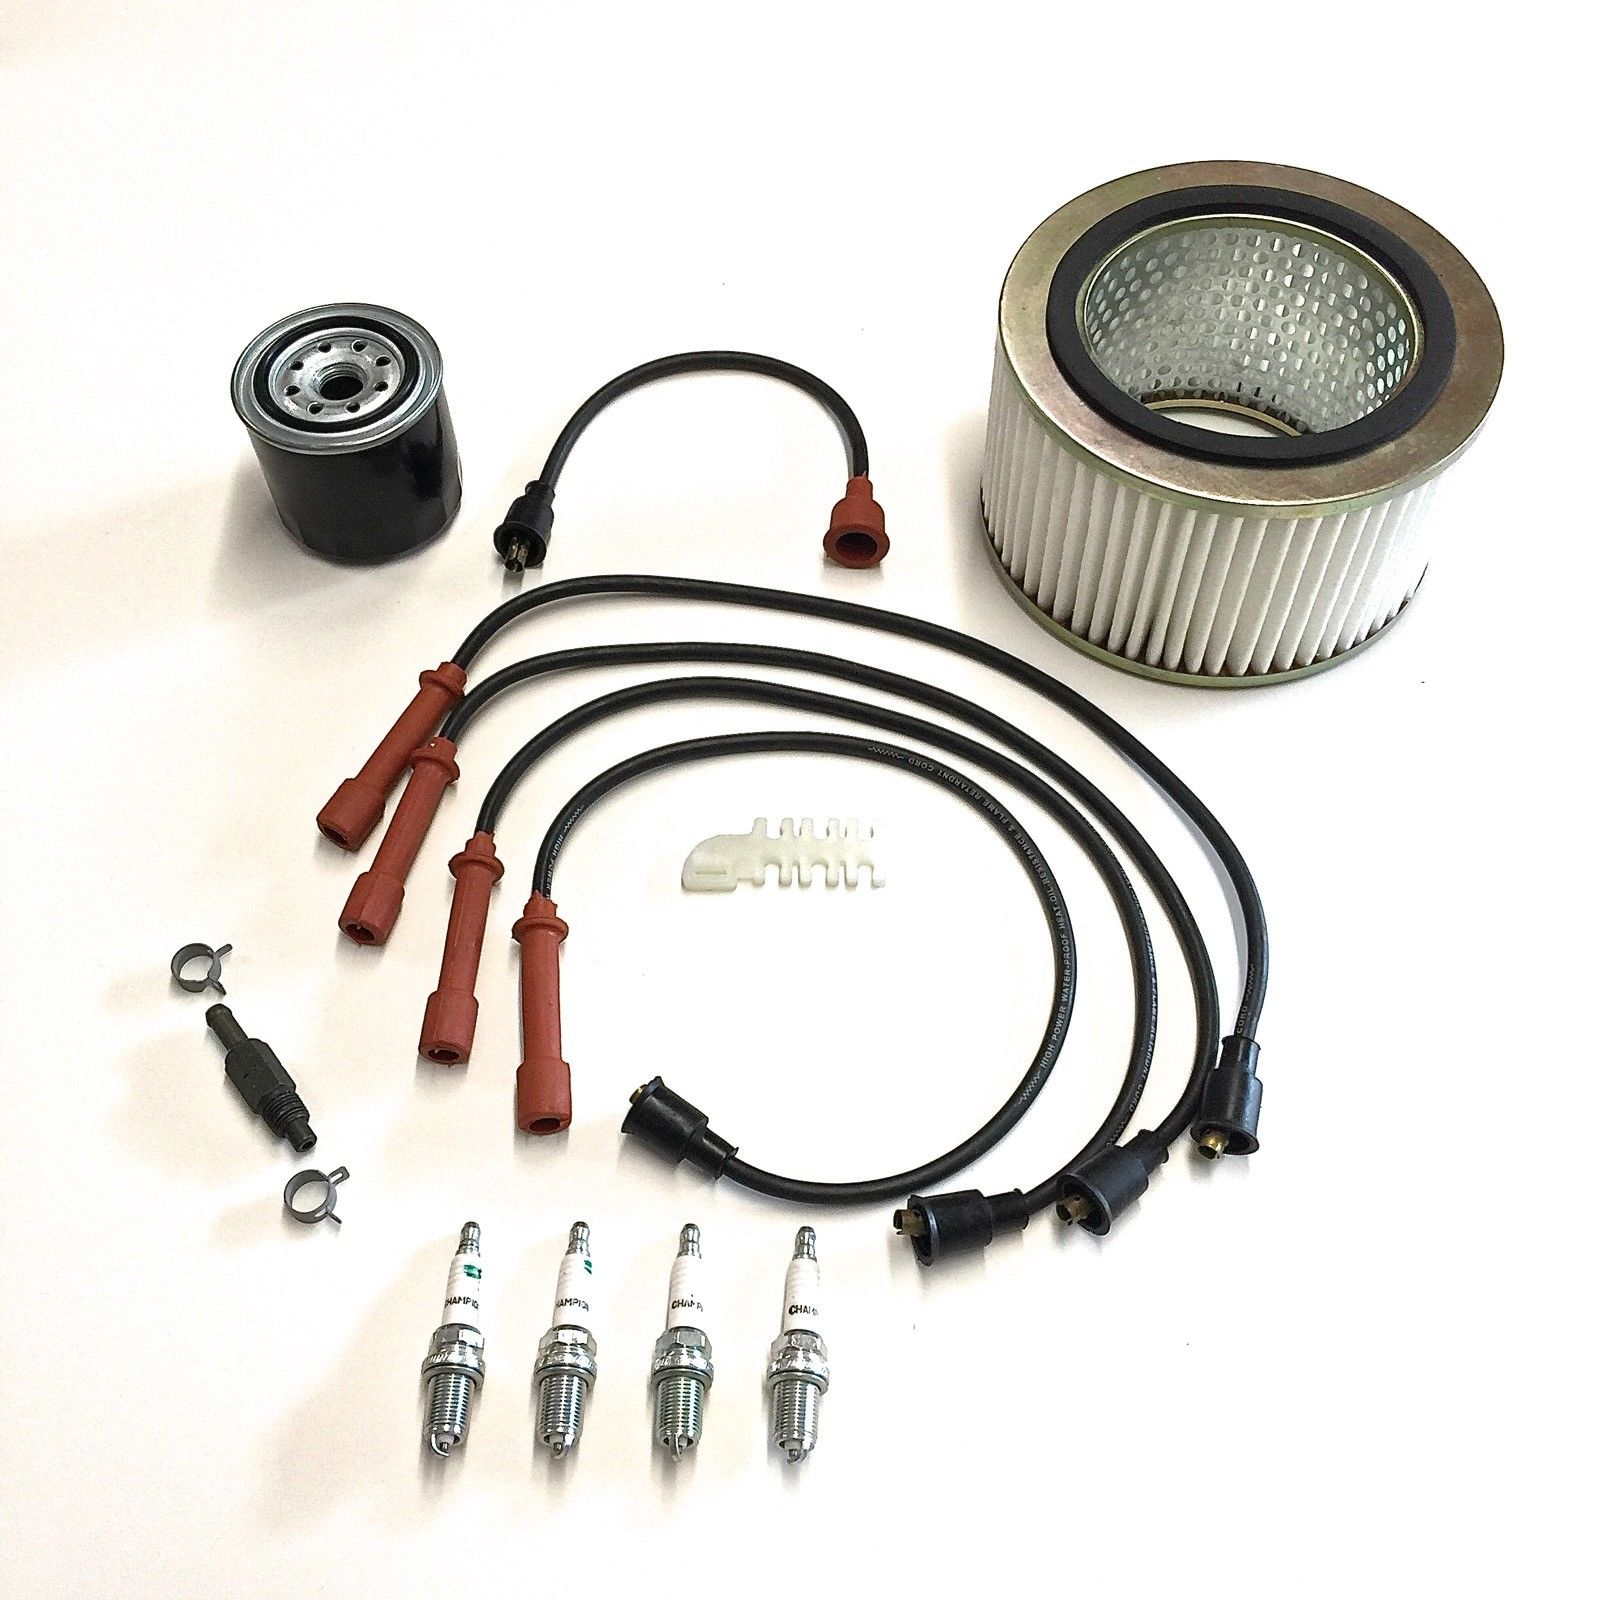 hight resolution of tune up oil air filters spark plugs wires